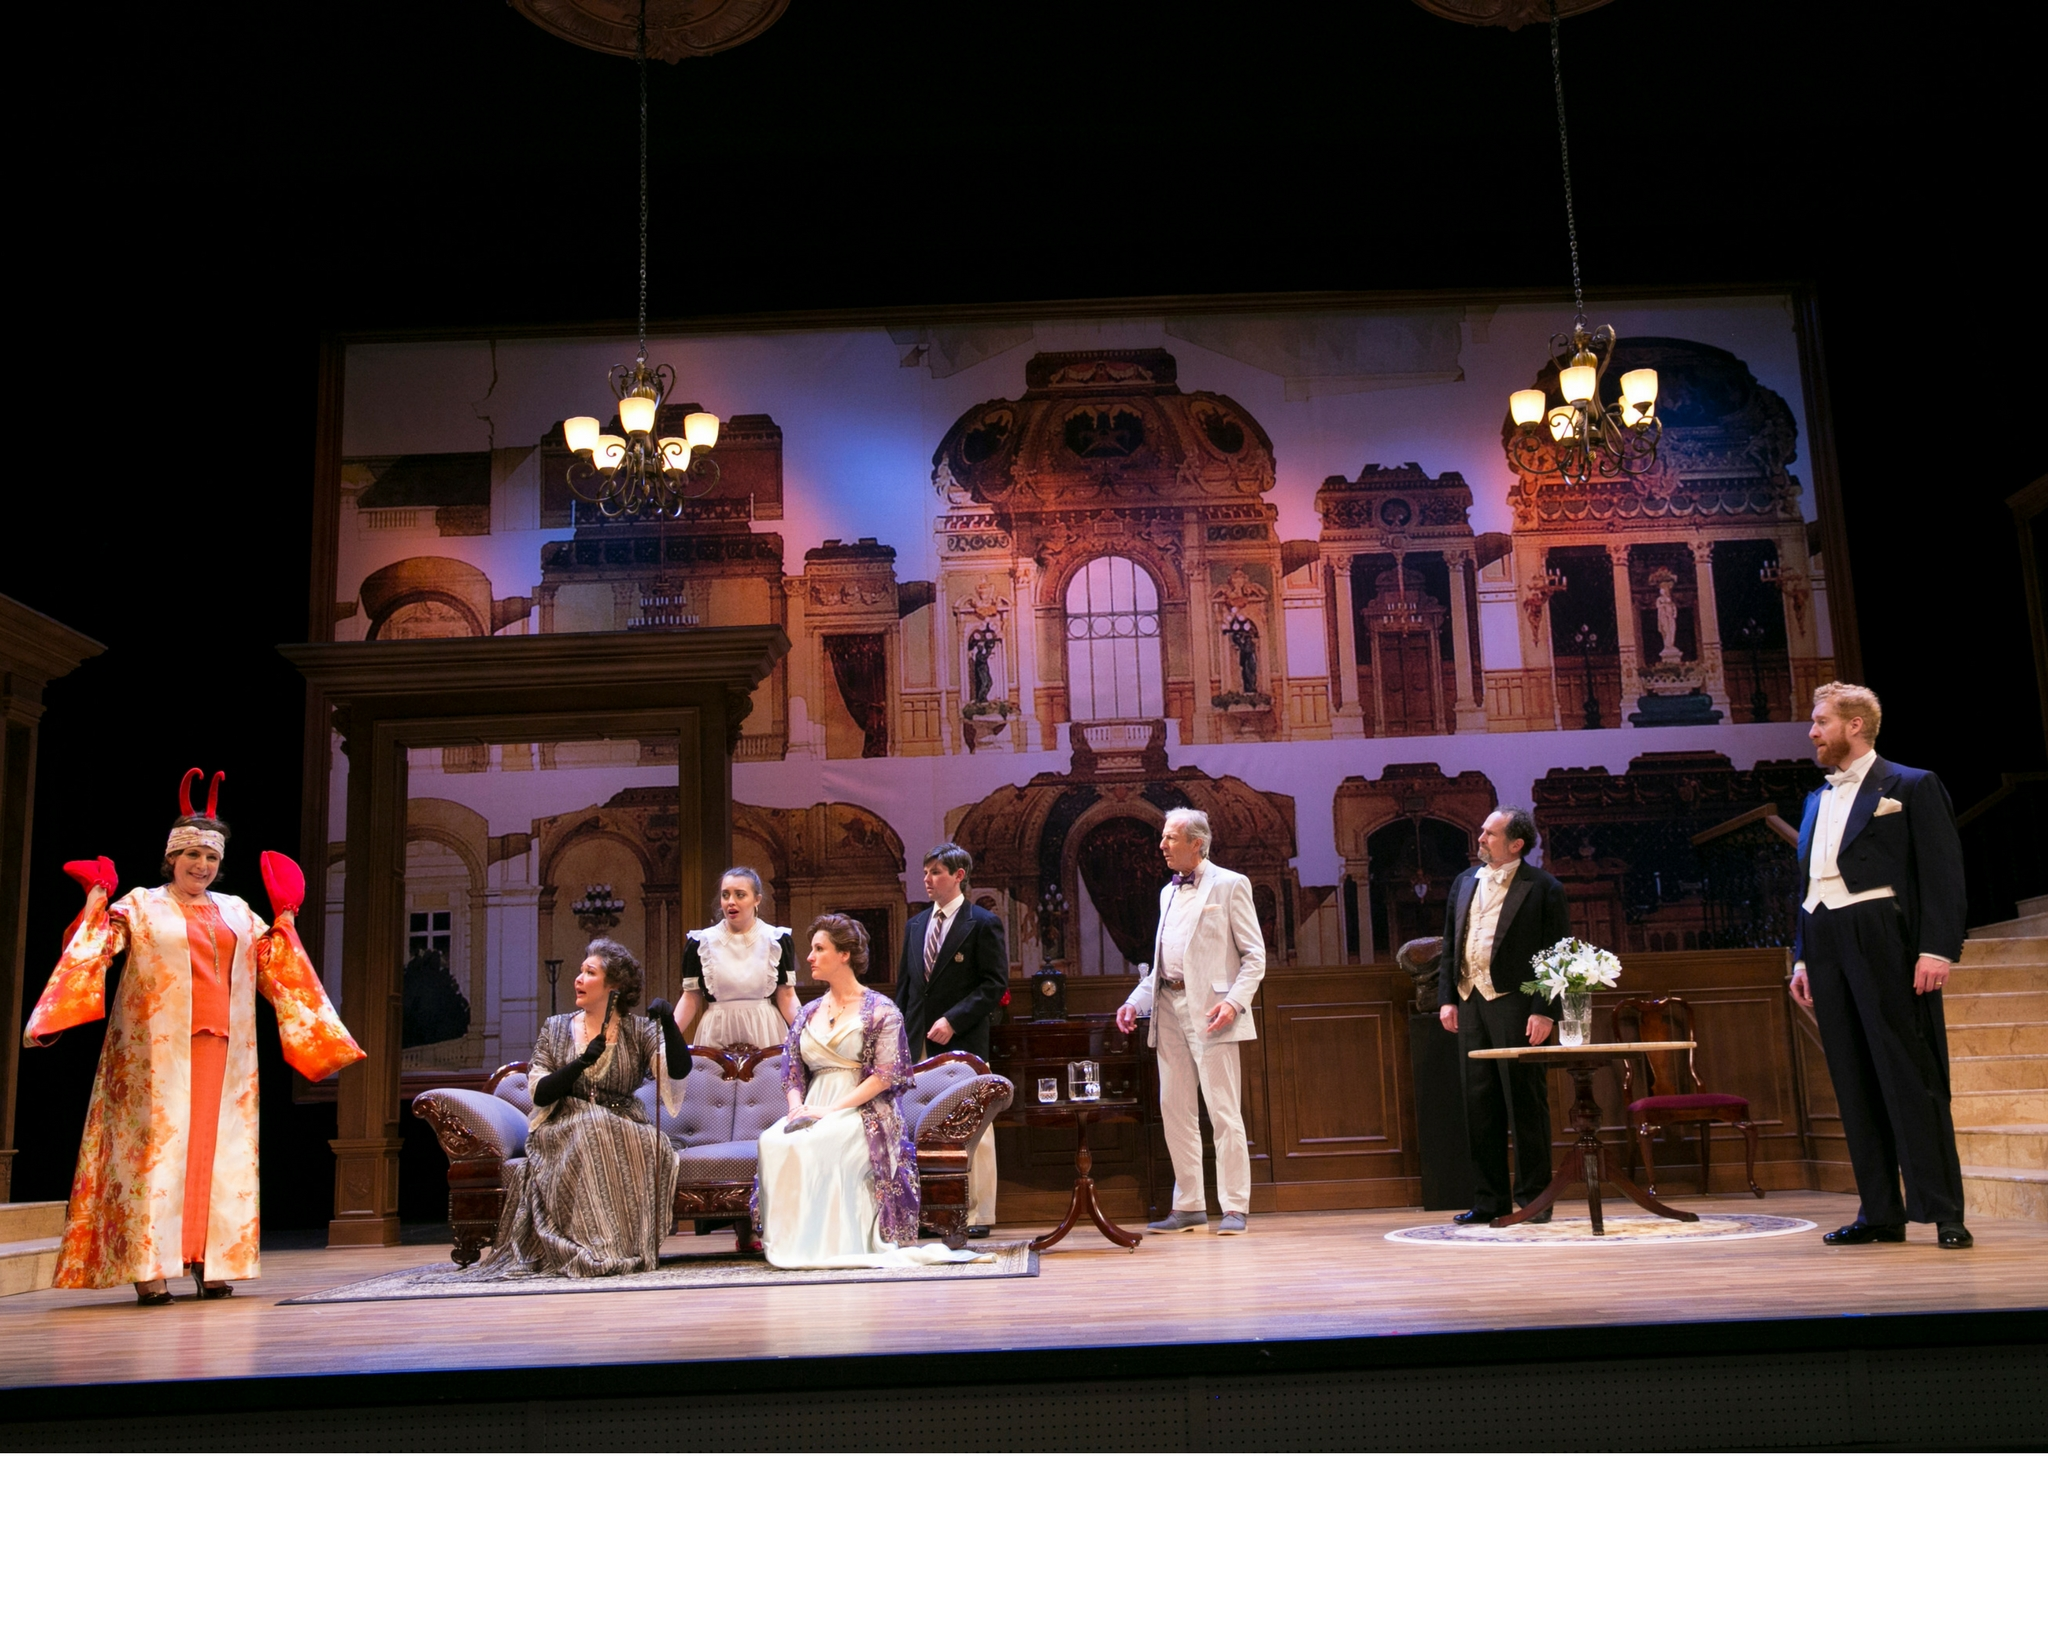 Veronica Anastasio Wiseman (Sally Webster), Jordan Clark (Betina Brevoort), Josephine Moshiri Elwood (Mary Gallagher), Amanda Collins (Florence DeRoot), Eliott Purcell (Tobias Vivian Pfeiffer, Jr.), Will Lyman (Schuyler Lynch), Jeremiah Kissel (Arnold Strauss), and Ed Hoopman (Tobias Vivian Pfeiffer) in Old Money, 2017-Photo by Evgenia Eliseeva